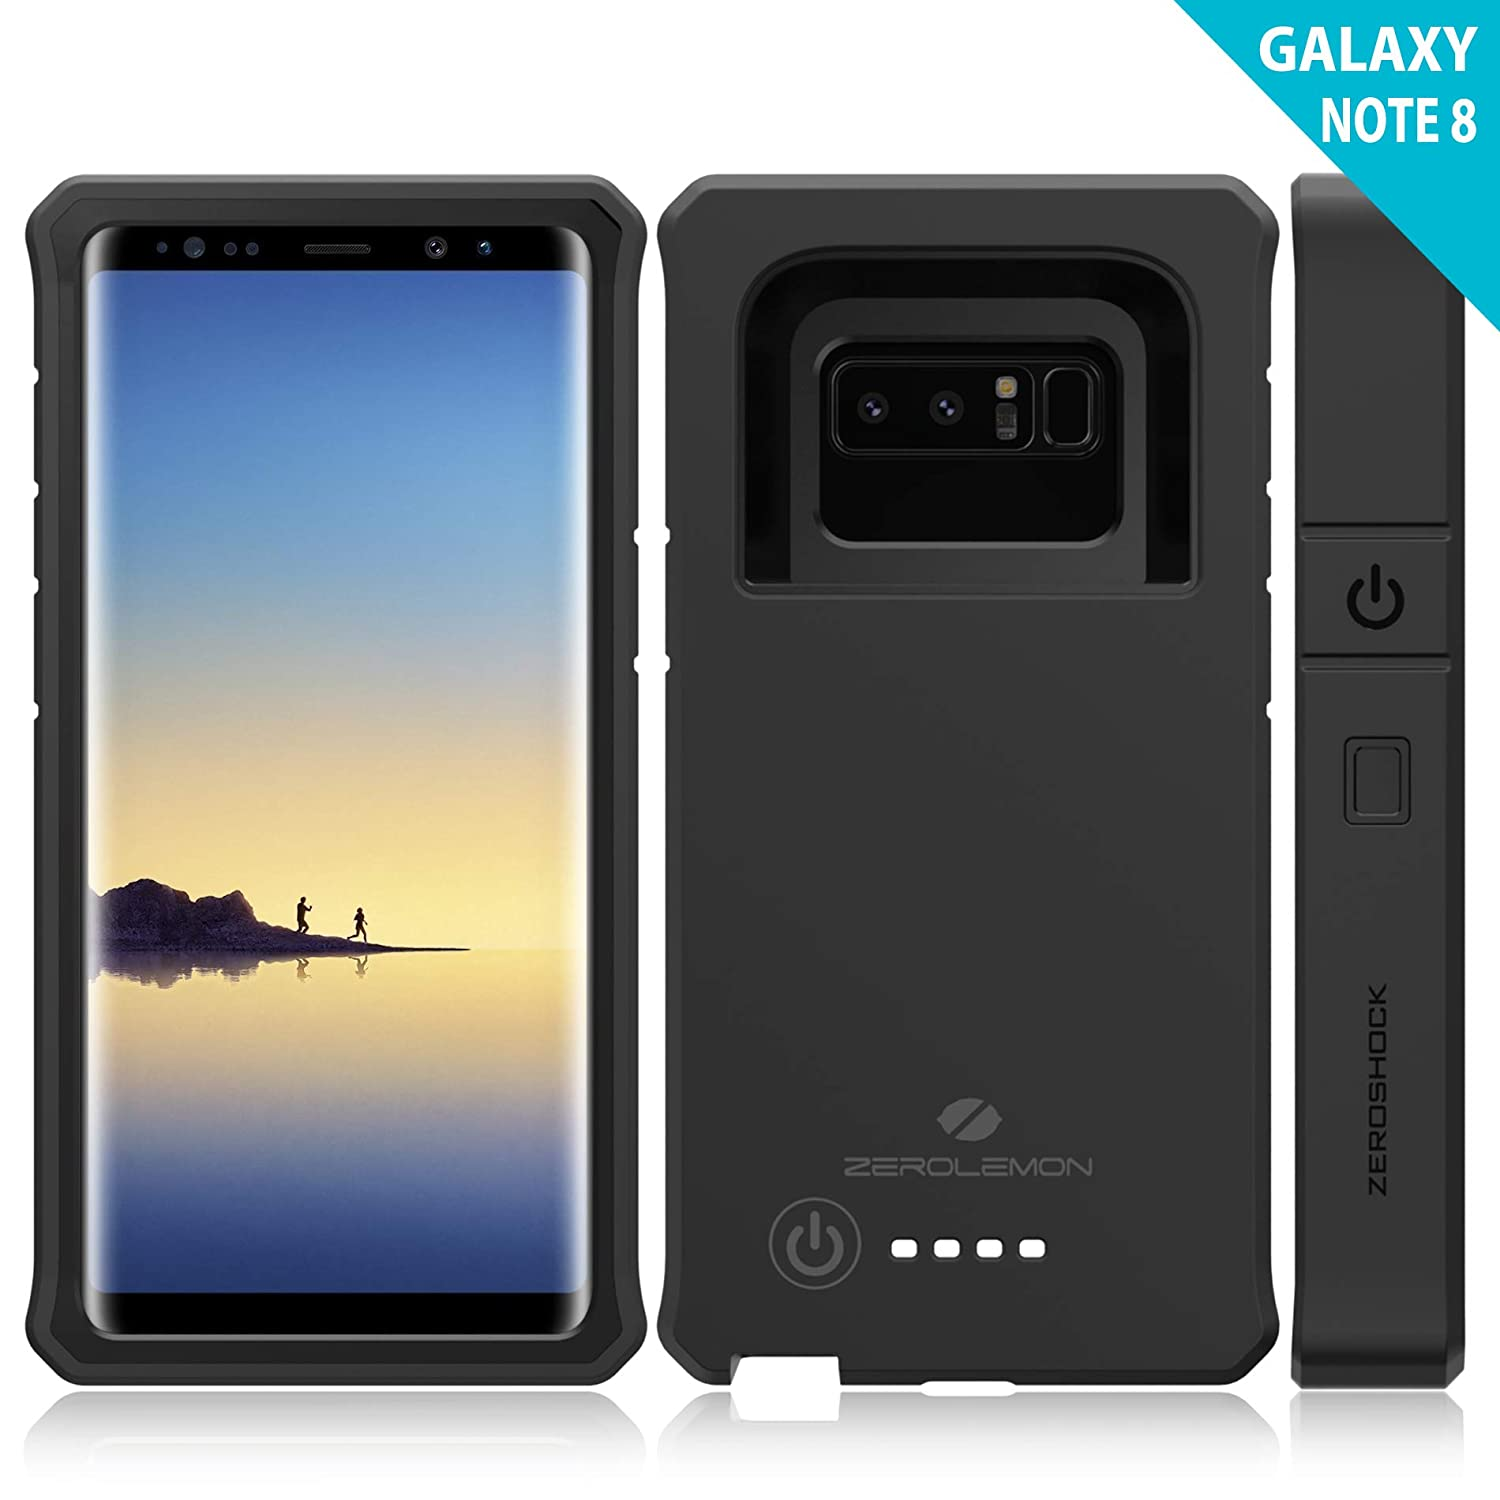 ZEROLEMON Galaxy Note 8 Battery Charger Case, ZeroShock 10000mAh Extended Rugged Charging Case Portable Battery Case for Galaxy Note 8 - Black